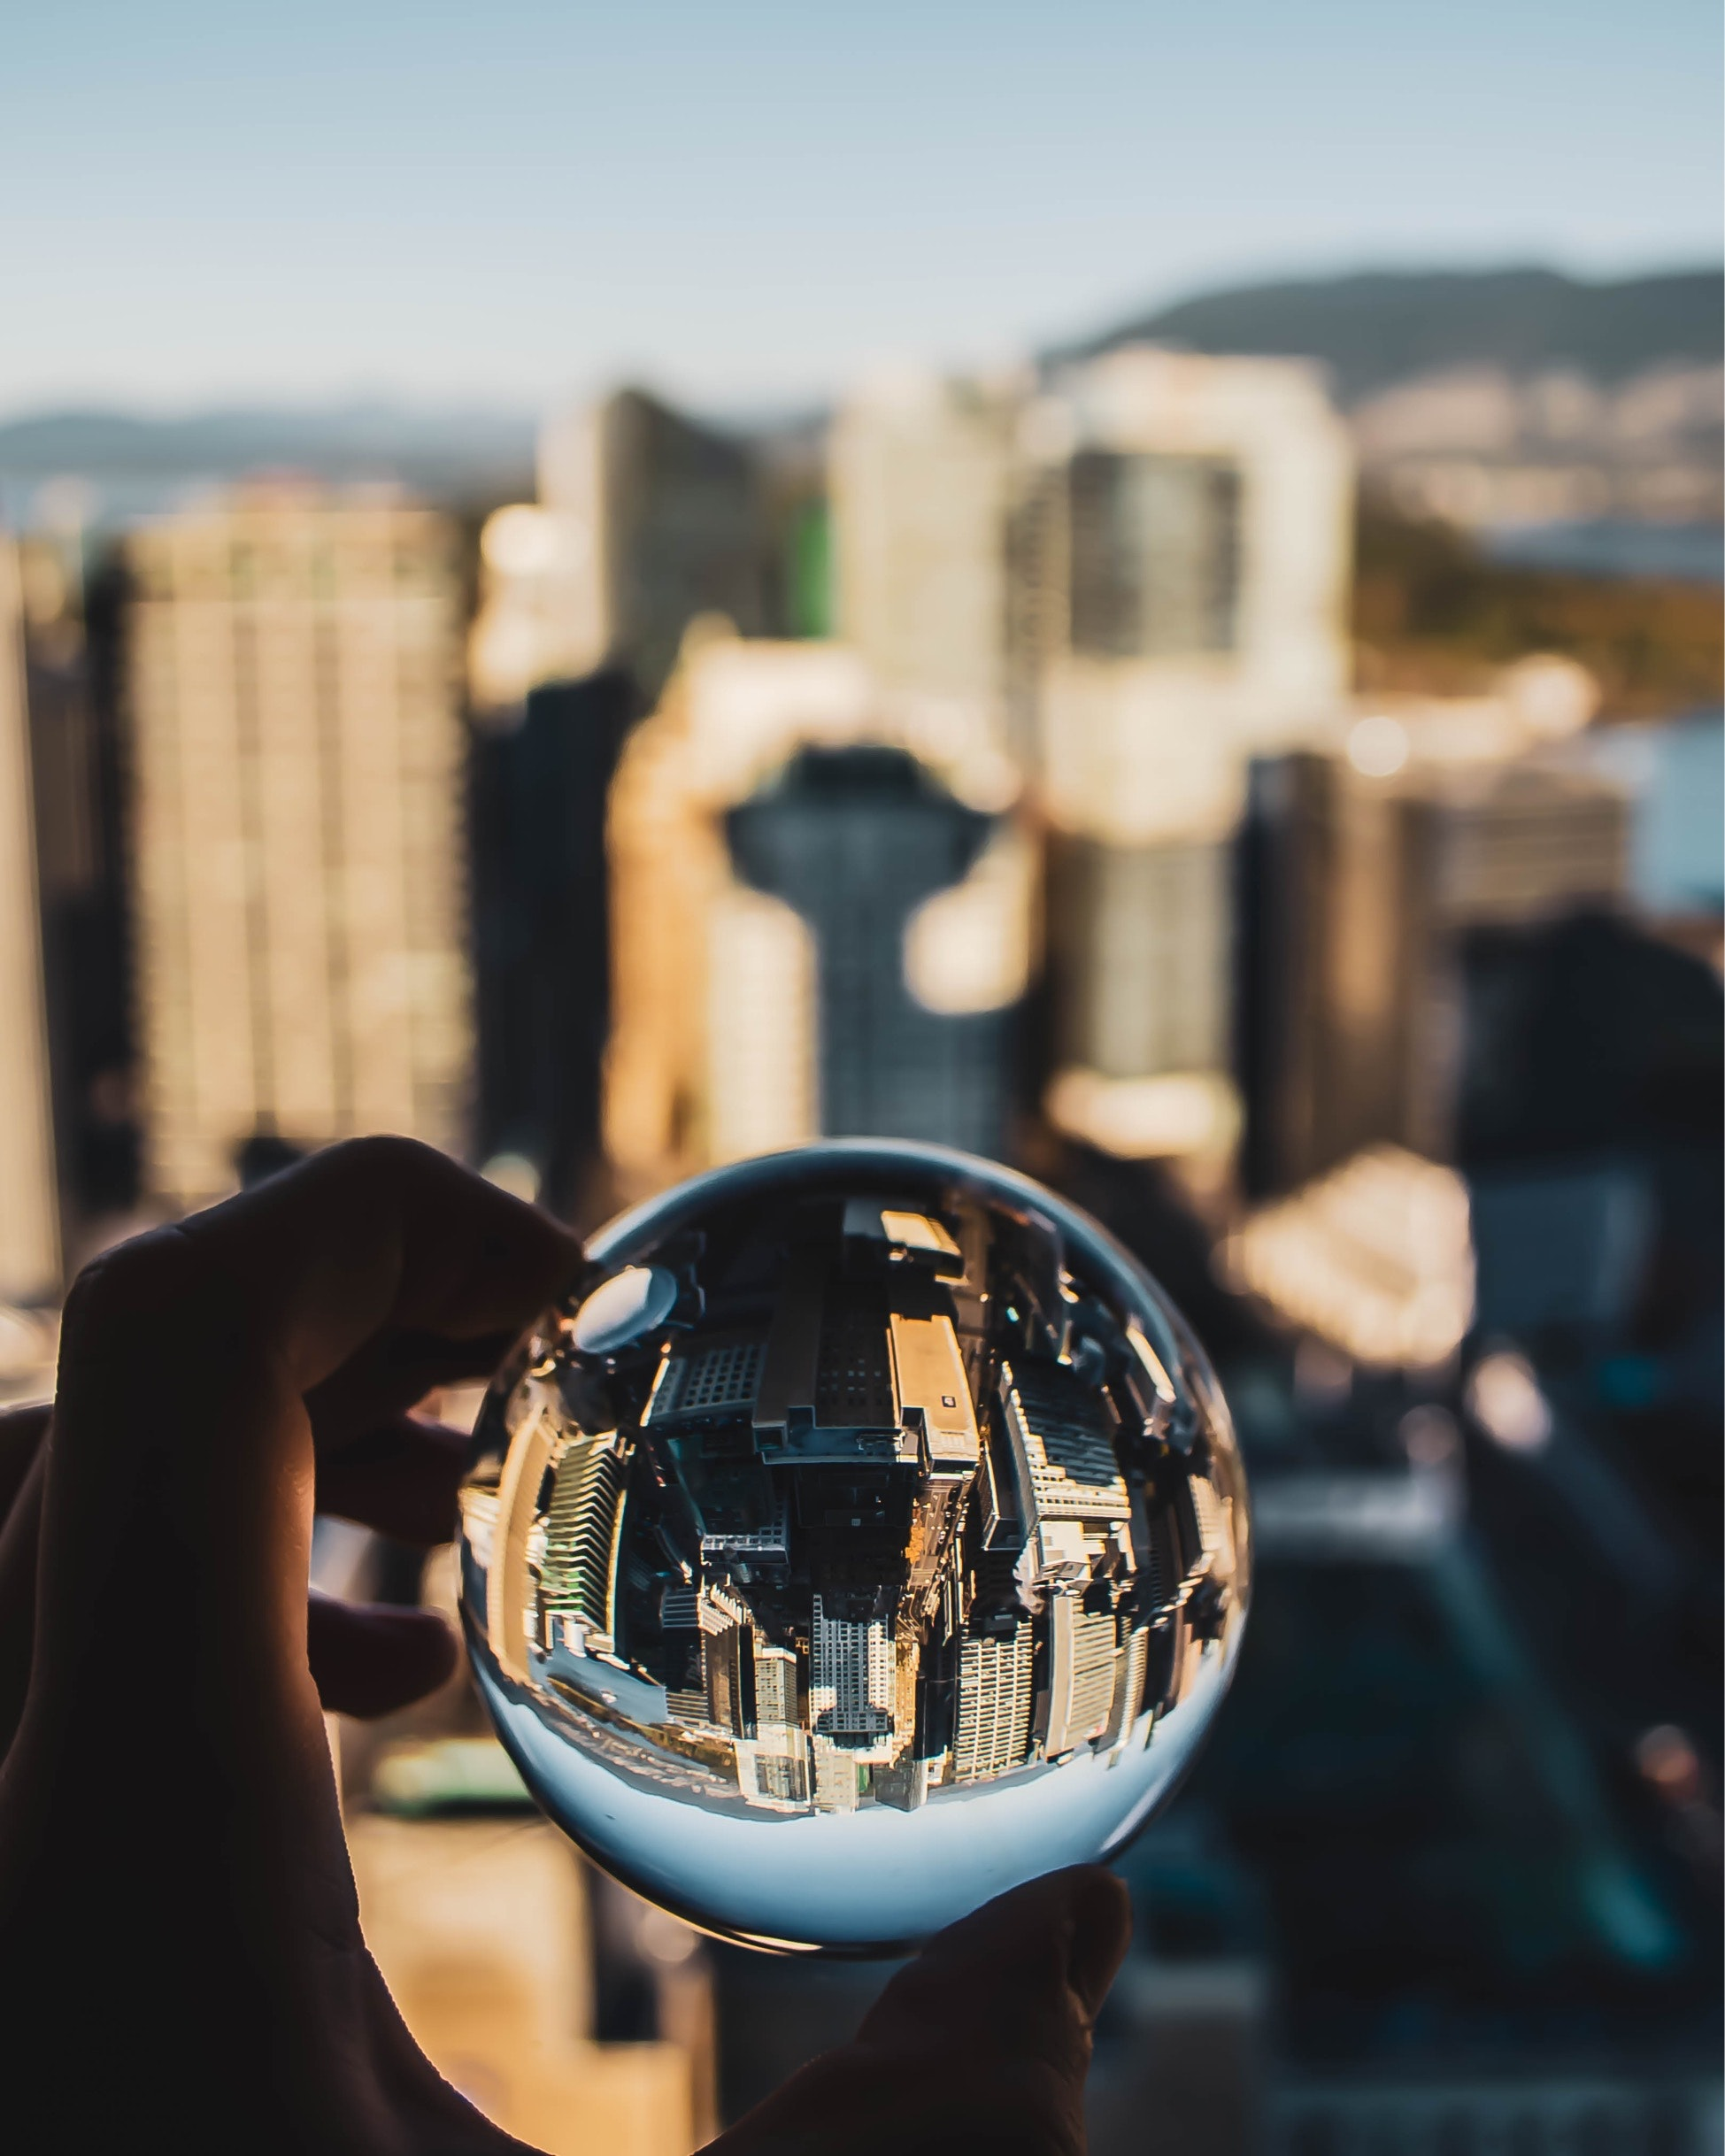 A person holding a glass ball